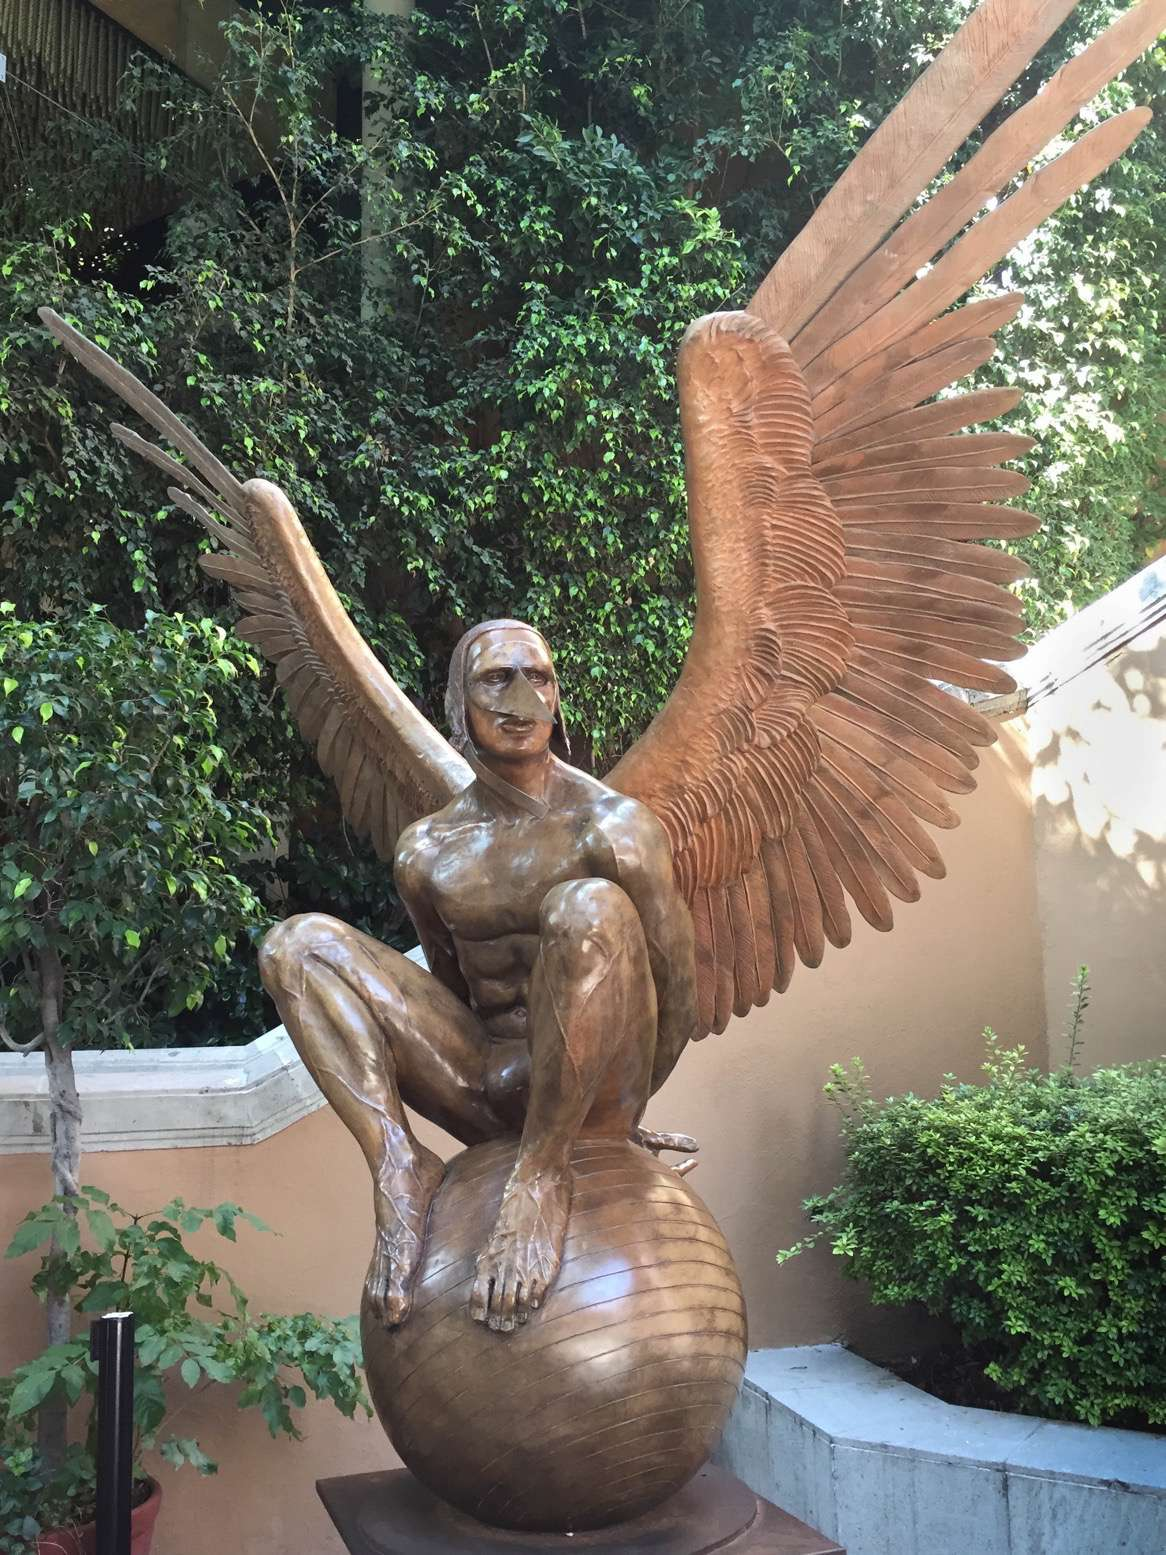 This is one of Jorge Marin's famous bronzes, Monumental Perselidas Angel, on public display in Mexico City. Wings, masks, spheres and boats are often elements in Jorge's distinctive sculptures.